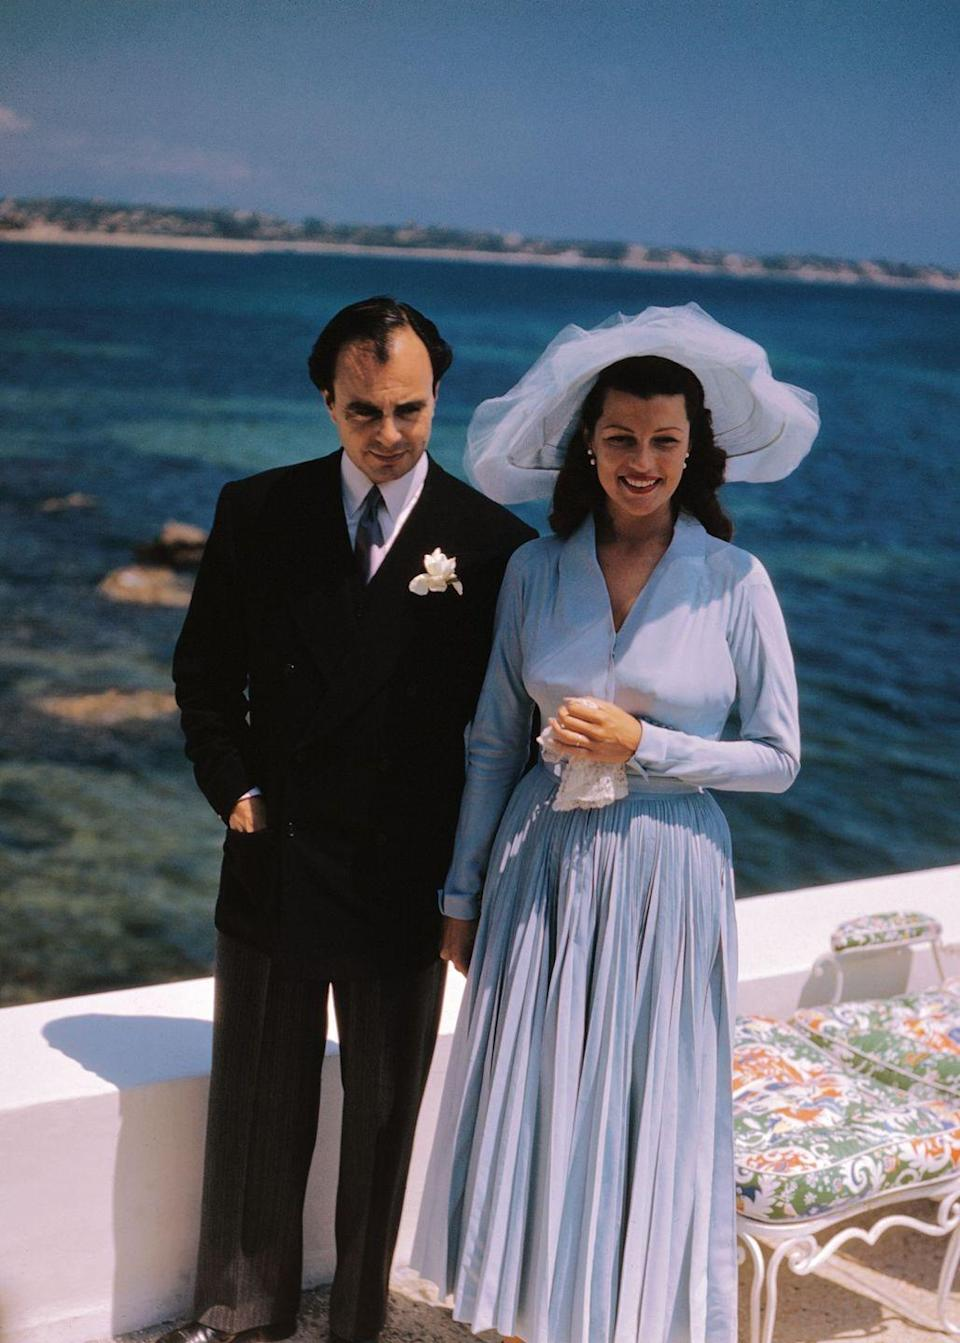 <p>Leaving her film career behind to marry Prince Aly Khan—a son of Sultan Muhammed Shah, Aga Khan III—Rita Hayworth found inspiration in Christian Dior's 1947 New Look collection. Her third wedding dress embodied Dior's classic elegance with its small bust and long, ample skirt.</p>